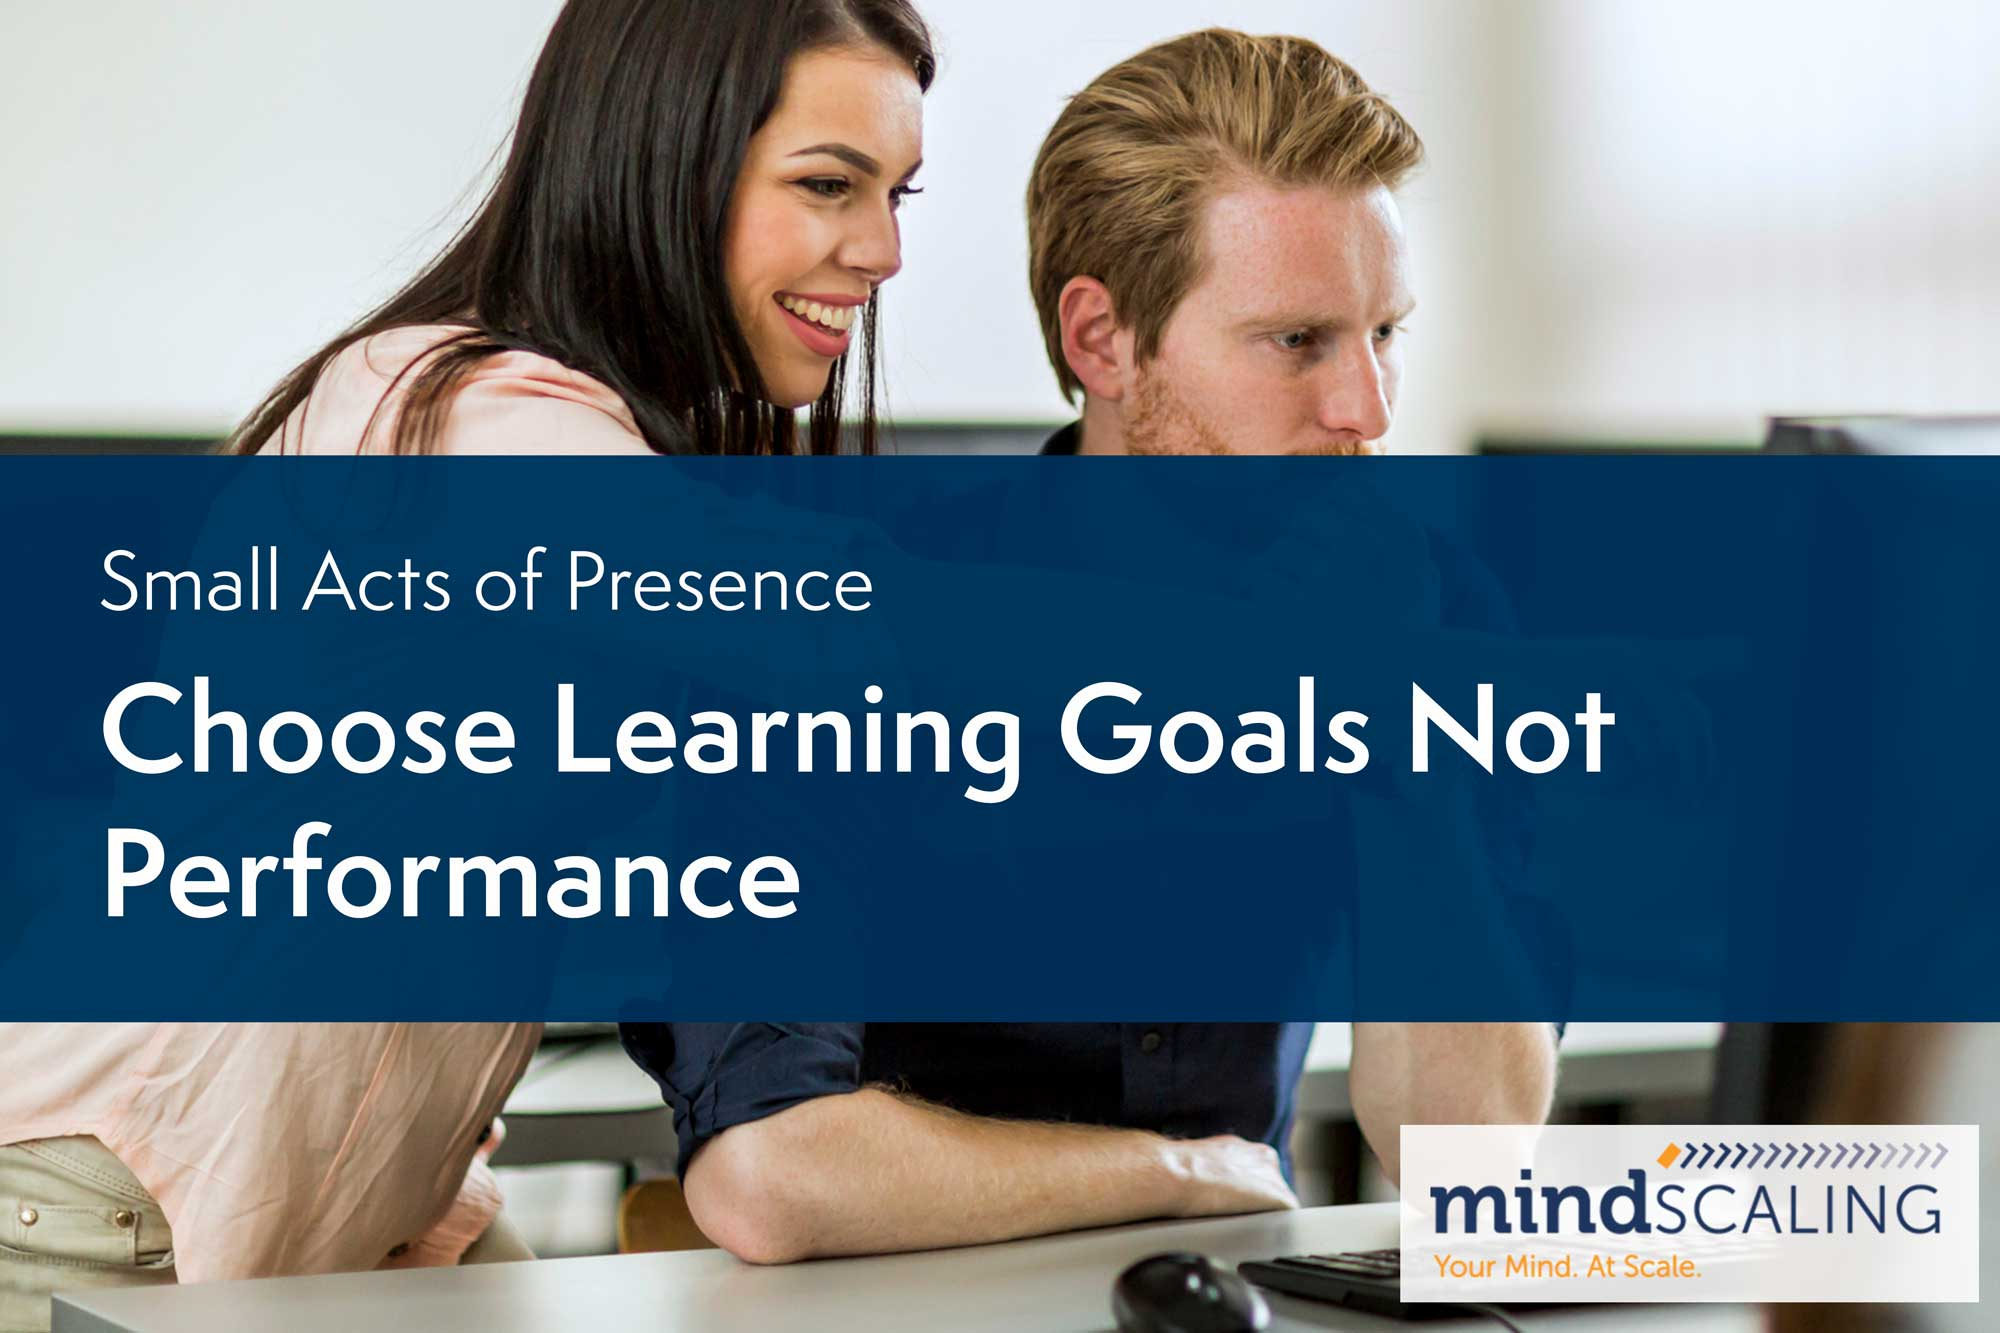 Small Acts of Presence: Choose Learning Goals, Not Performance Goals